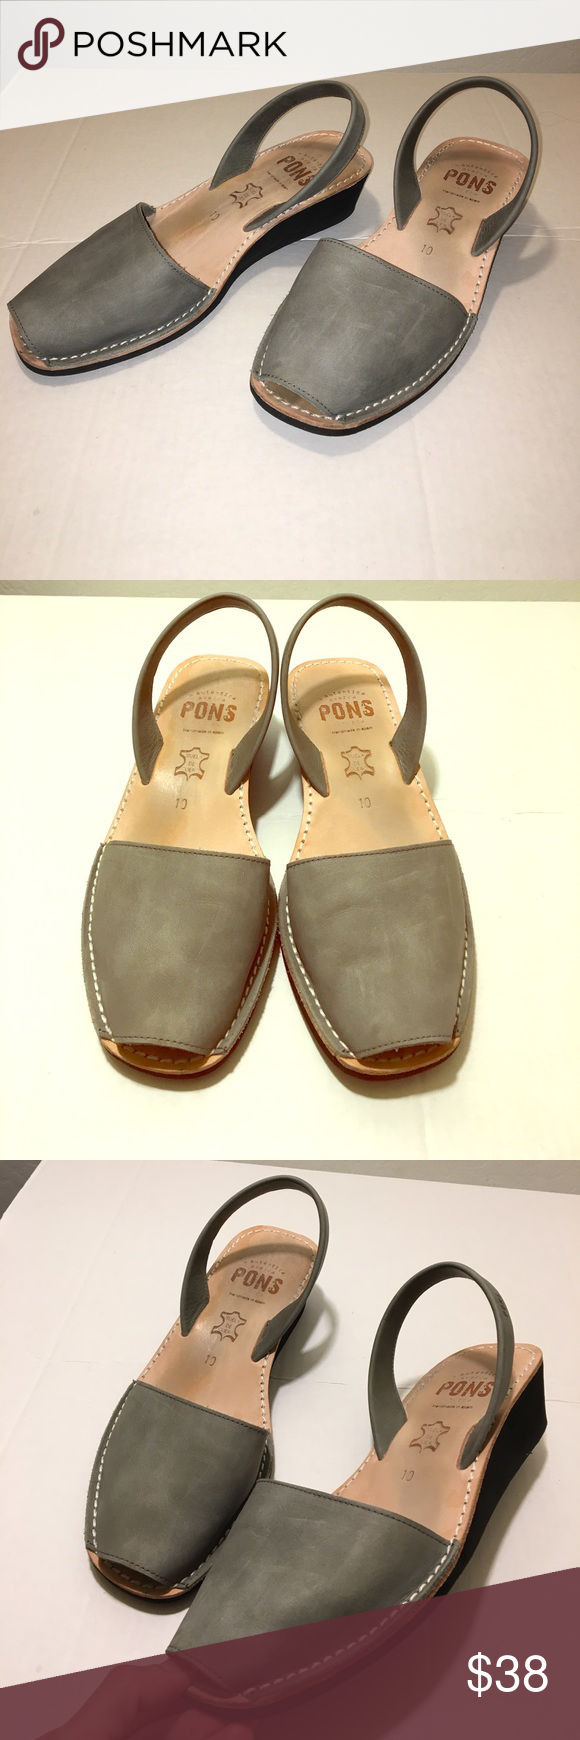 ba08eb1fd8ae Pons Avarcas Wedge in Grey Size 10 Pons Avarcas wedge in Grey. These  sandals are amazing! Here is some info from their website